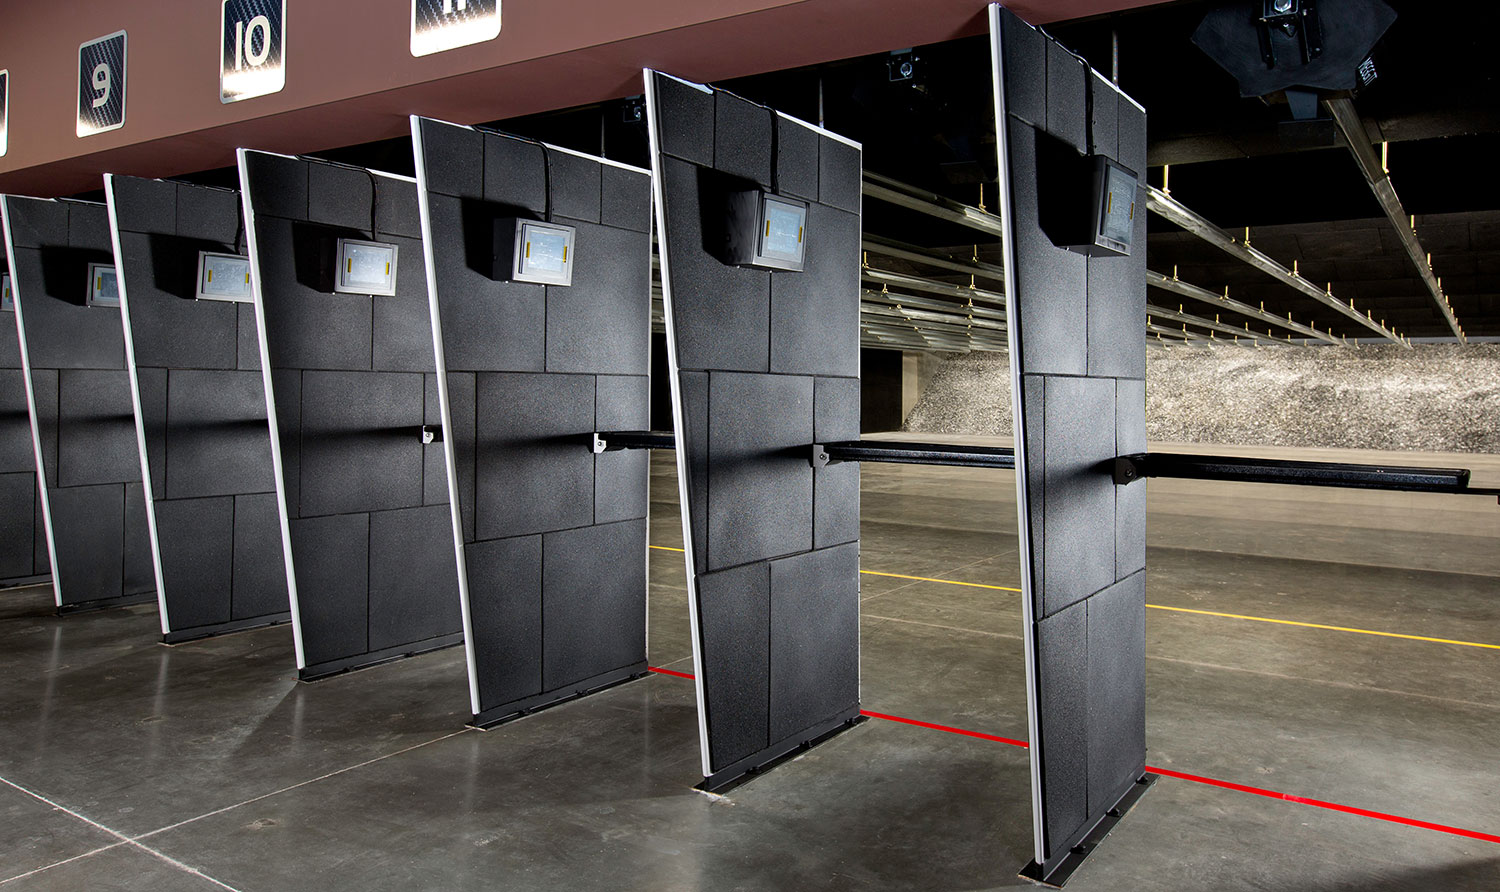 Shooting Range in Poway